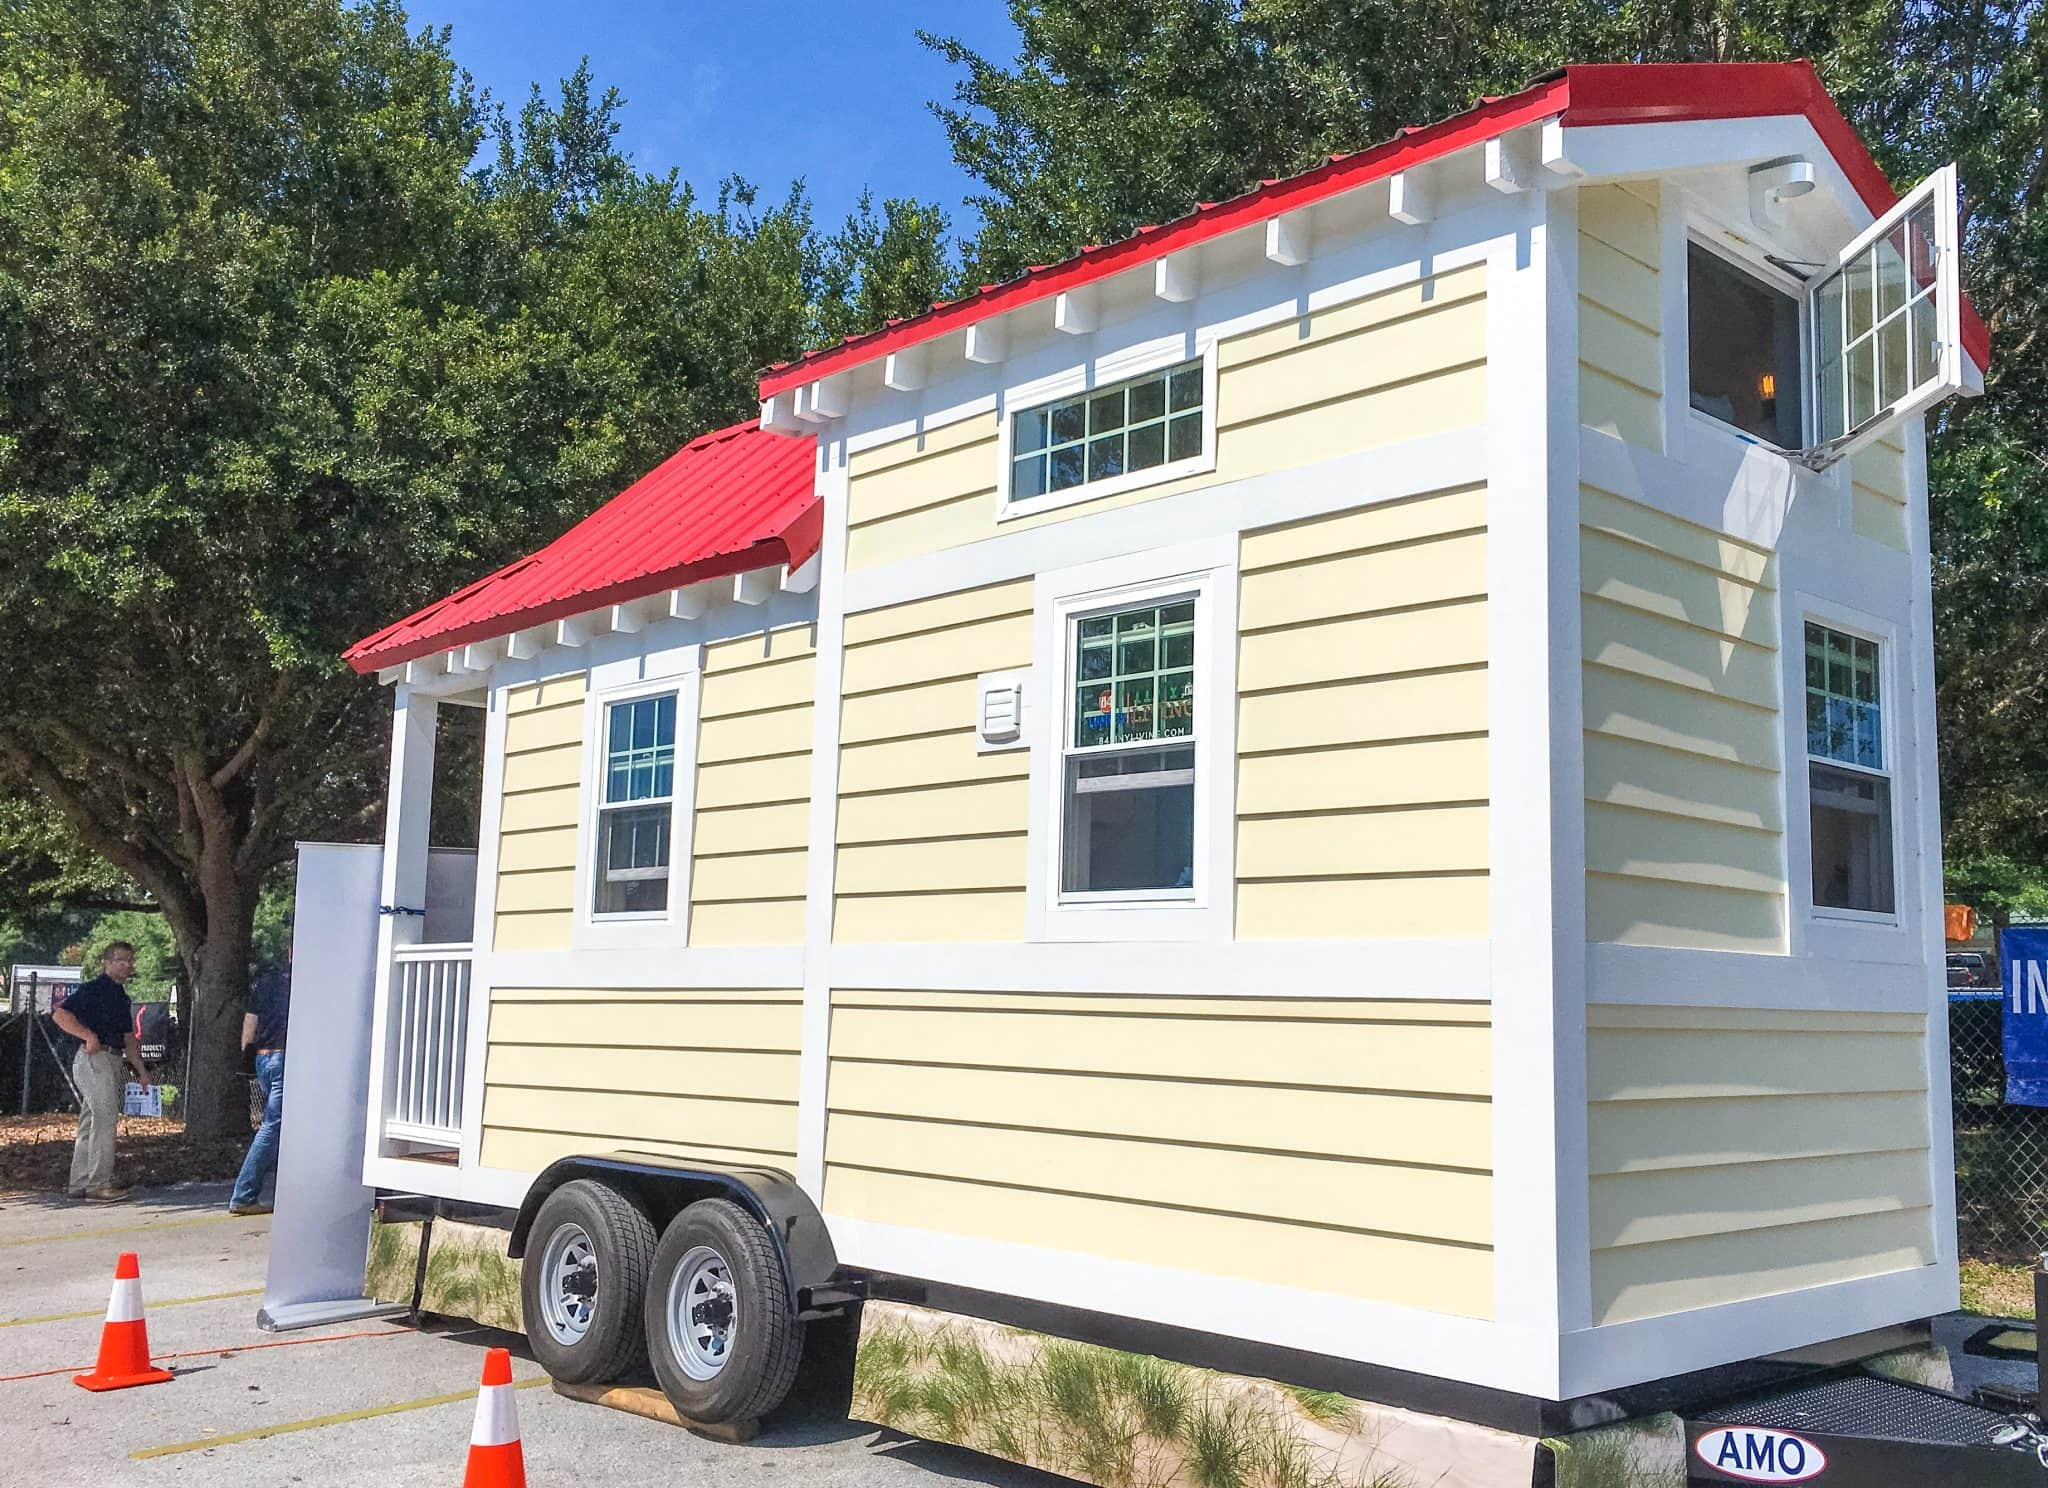 84 Lumber Tiny Living Tiny Homes Tour